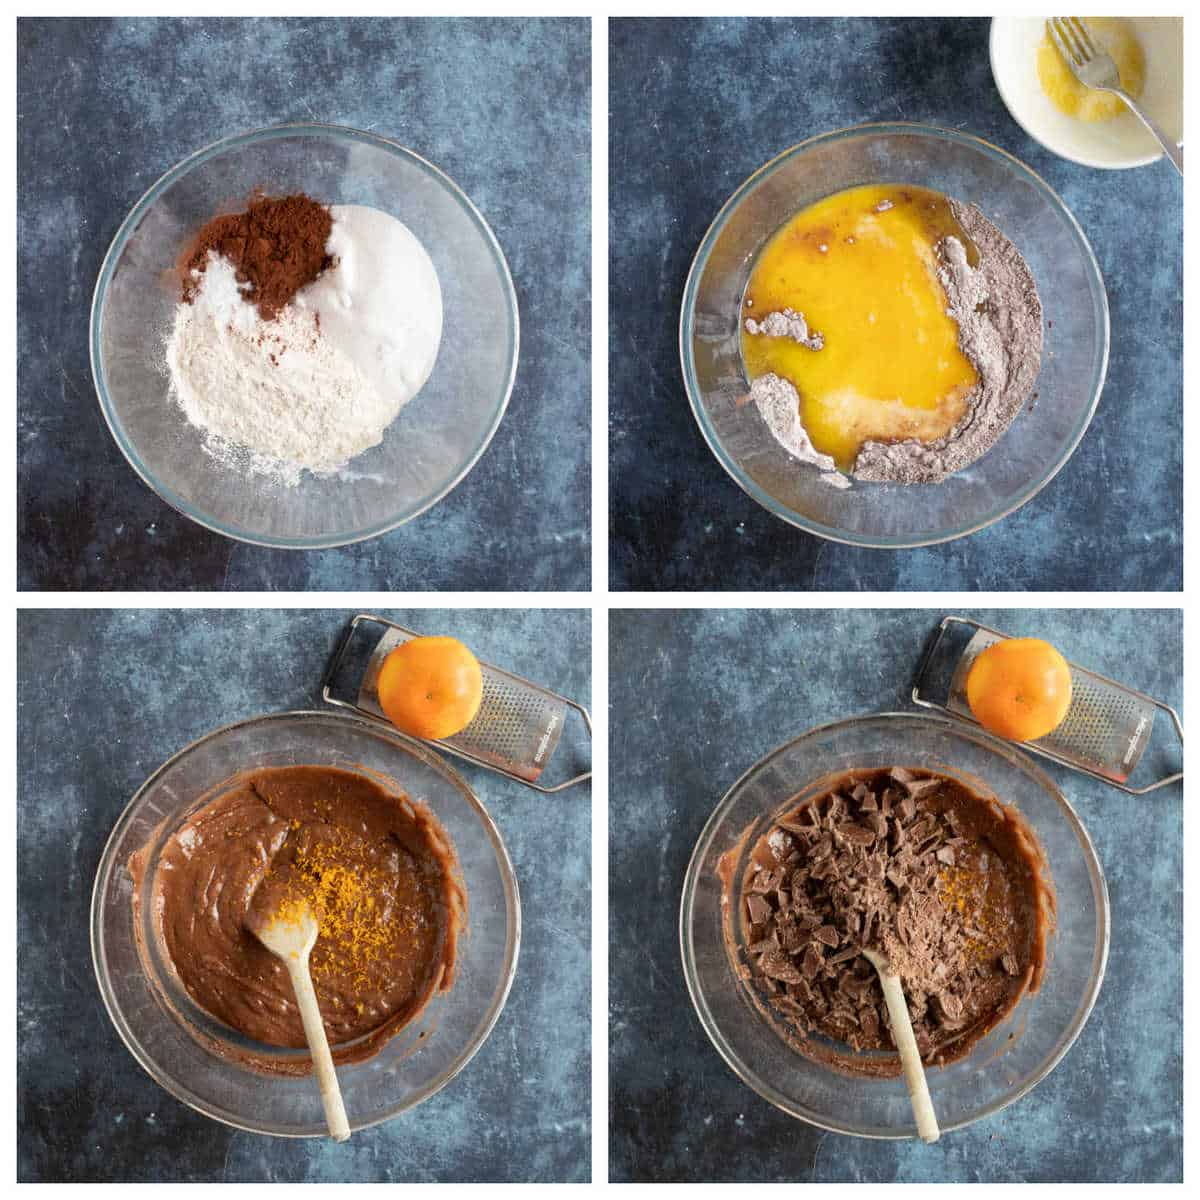 Step by step photo instructions for making chocolate orange muffins.